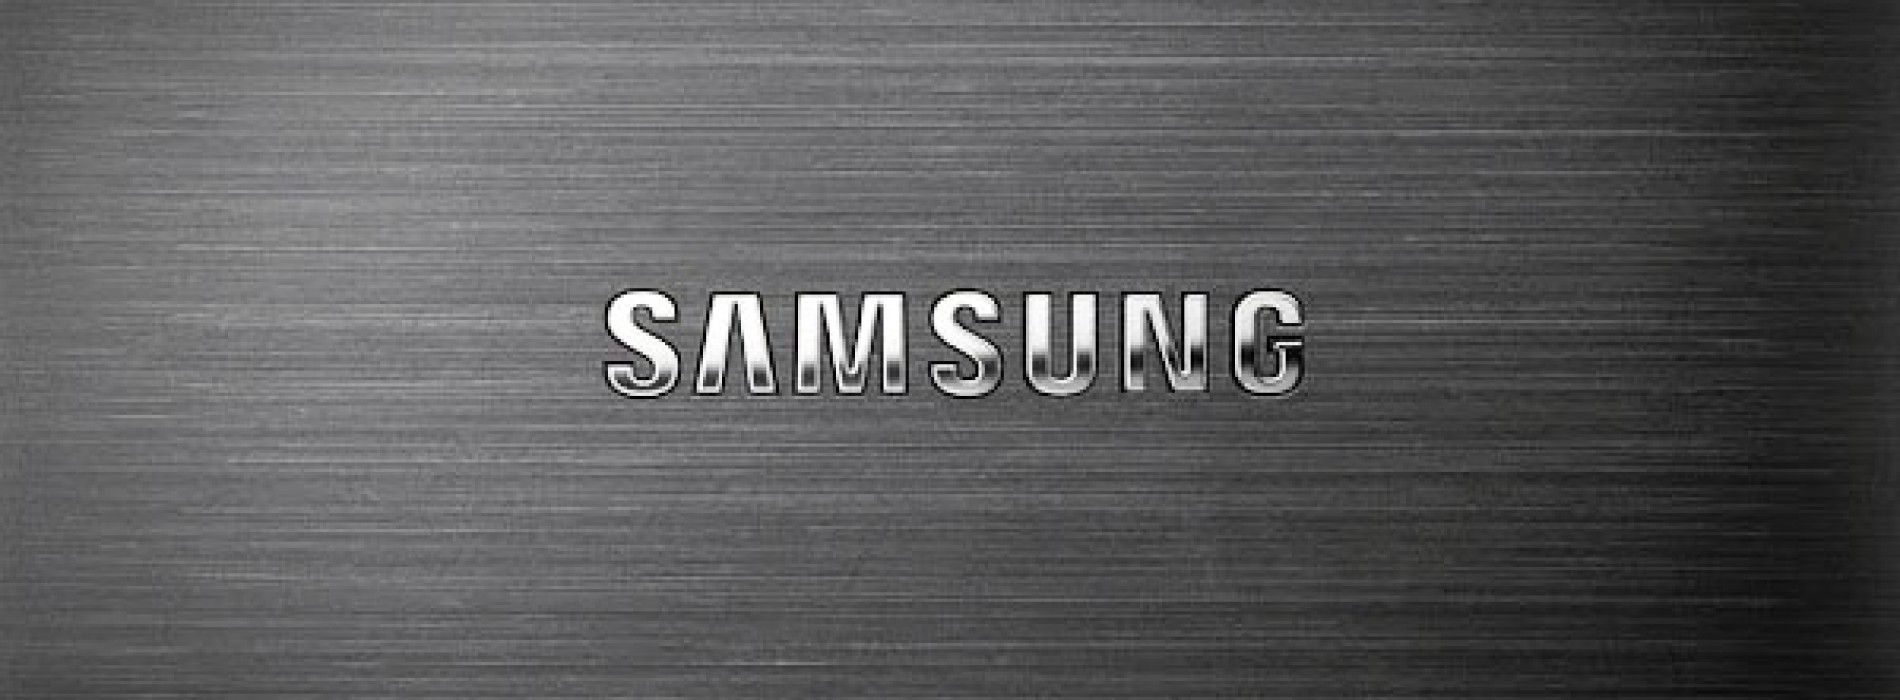 Samsung are working on an Ultrasonic Cover for the Galaxy Note 4